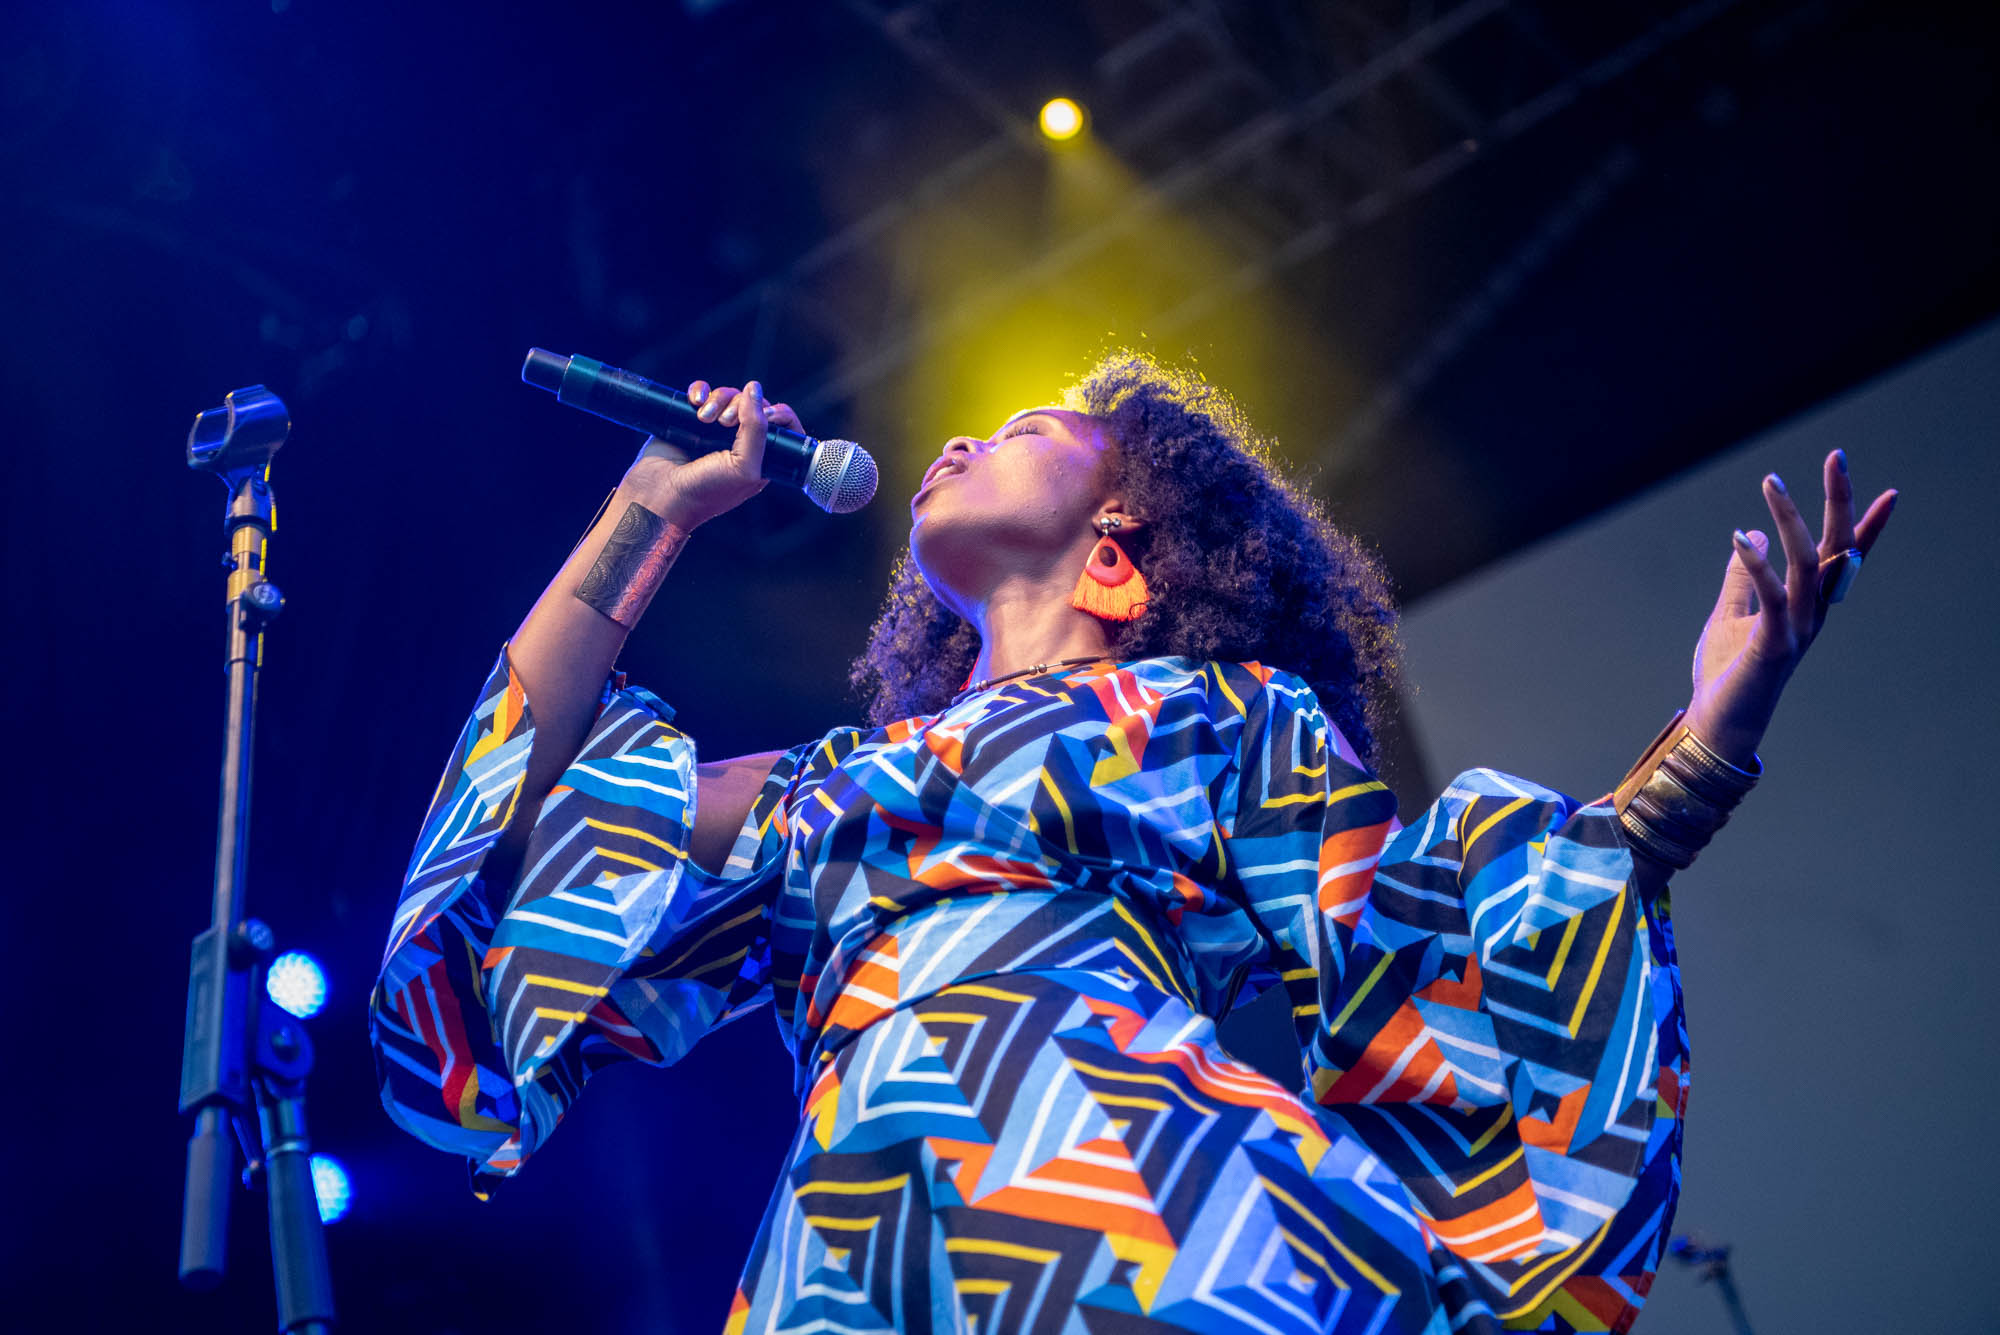 Salima Rah of Delsonido during their performance at BRIC Celebrate Brooklyn! Festival on Saturday, August 10, 2019.